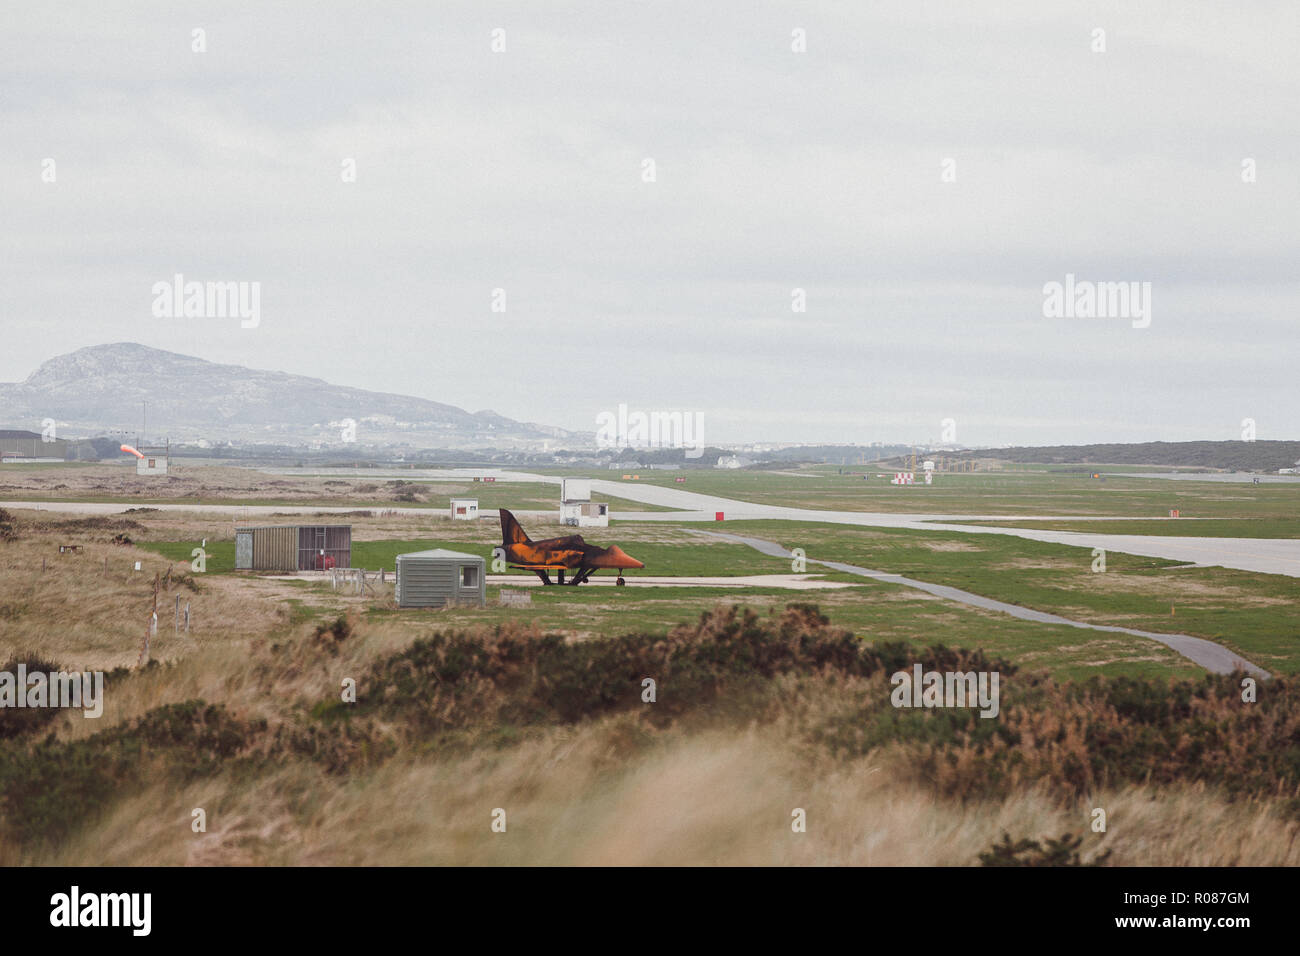 disused jet plane, on Valley runway, Rhosneigr, Anglesey, North Wales, UK, with Holy Mountain, Holy Island, in the background - Stock Image